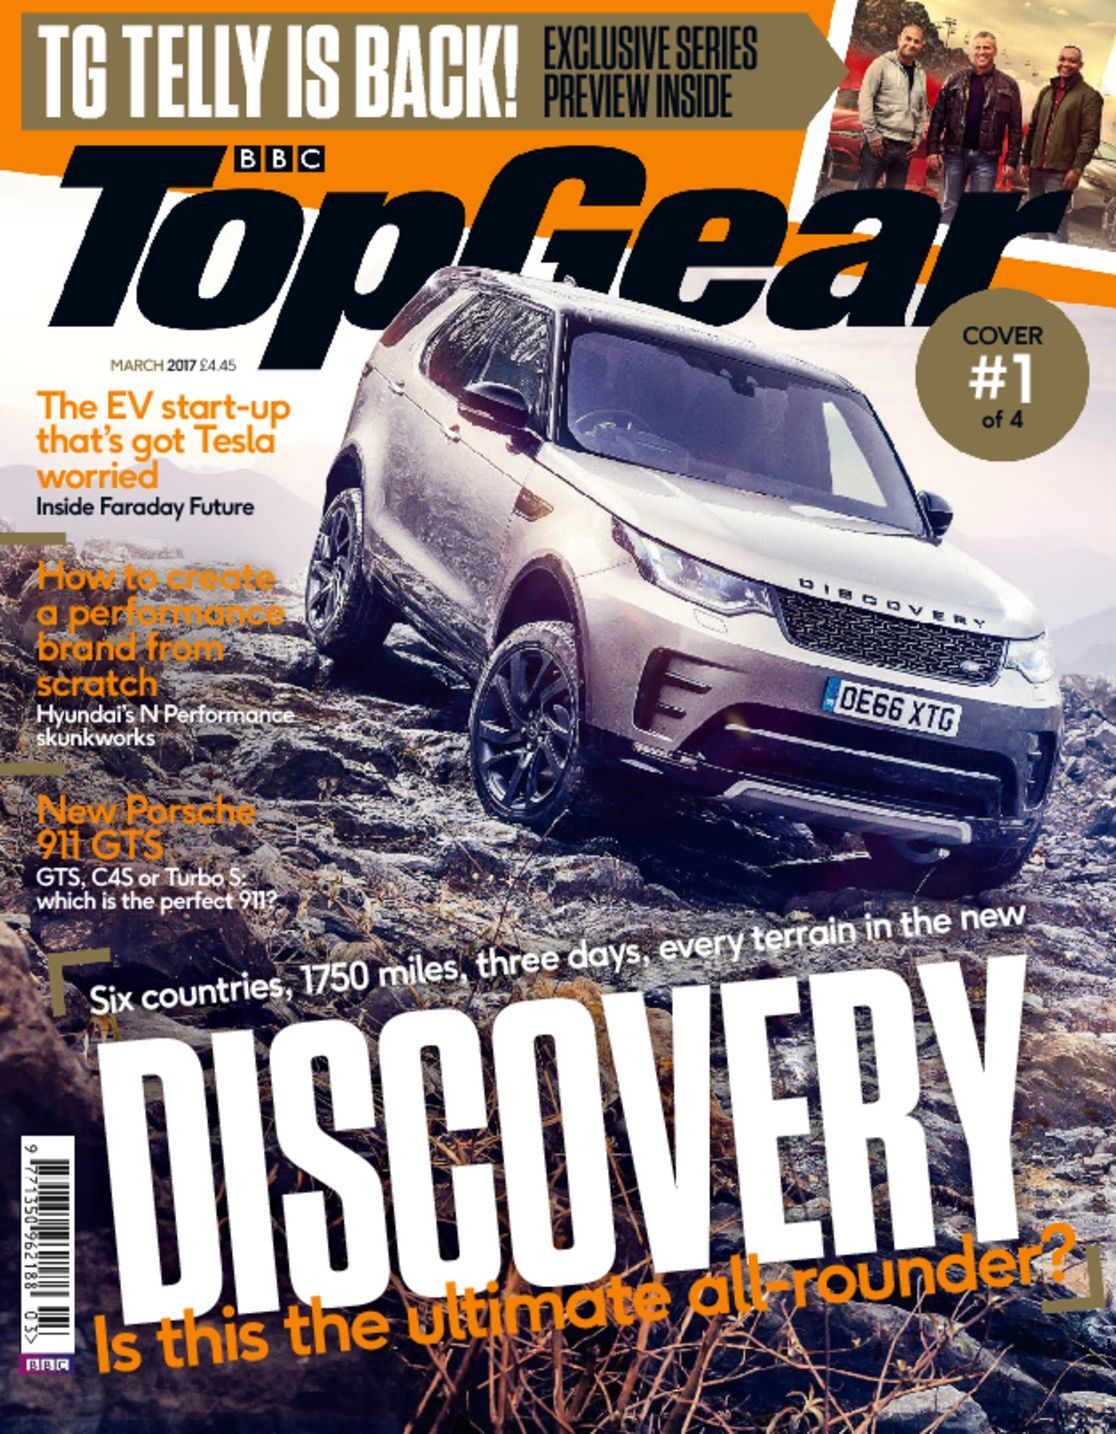 bbc top gear digital magazine. Black Bedroom Furniture Sets. Home Design Ideas